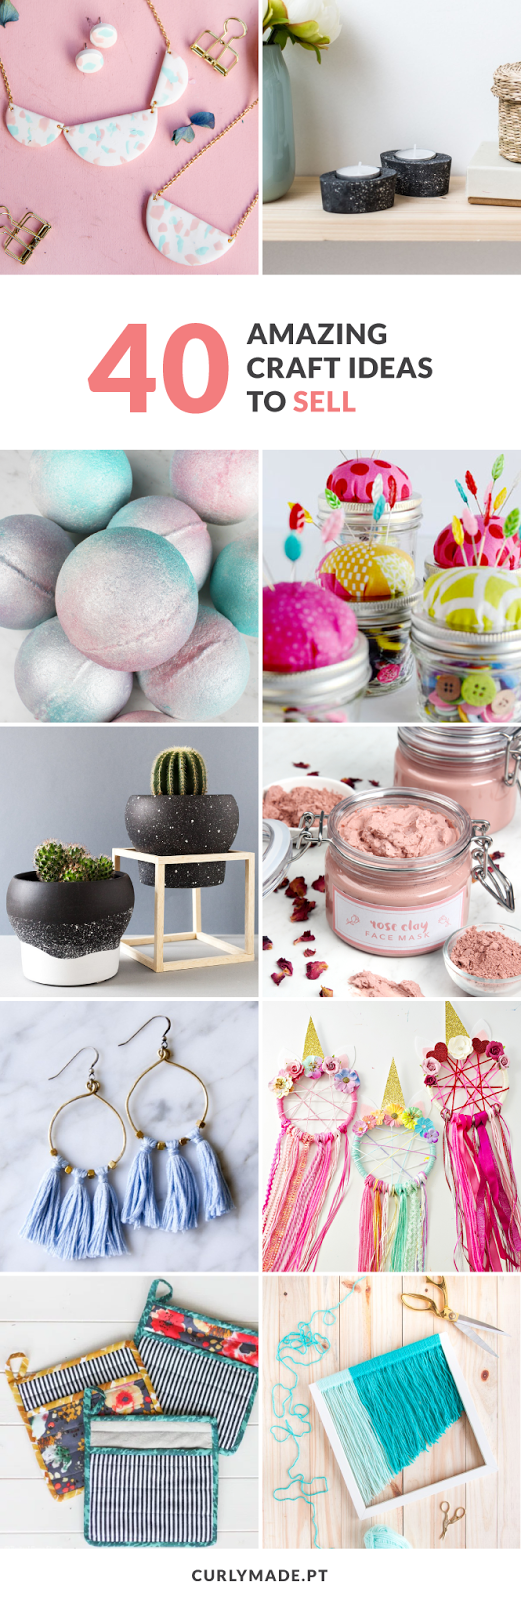 A round-up of 40 DIY Craft ideas to sell on etsy or at craft fairs including Jewelry, Sewing Projects, Decor, Beauty Products, and Items for Kids  #diy #crafts #sell #etsy #ideas #curlymade